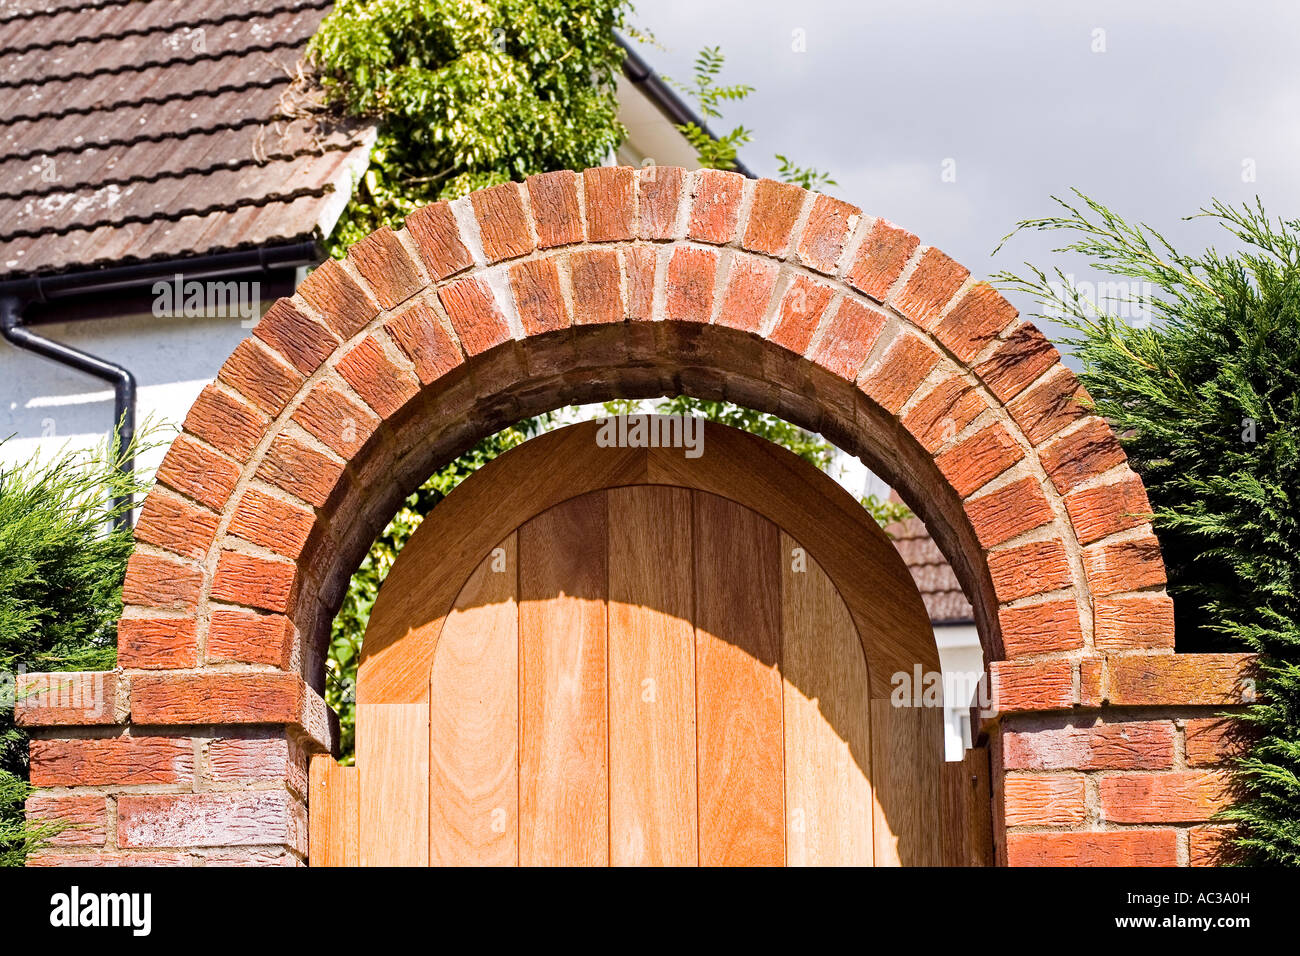 Curved Red Brick Arch Over Garden Gateway With Wooden Door Stock